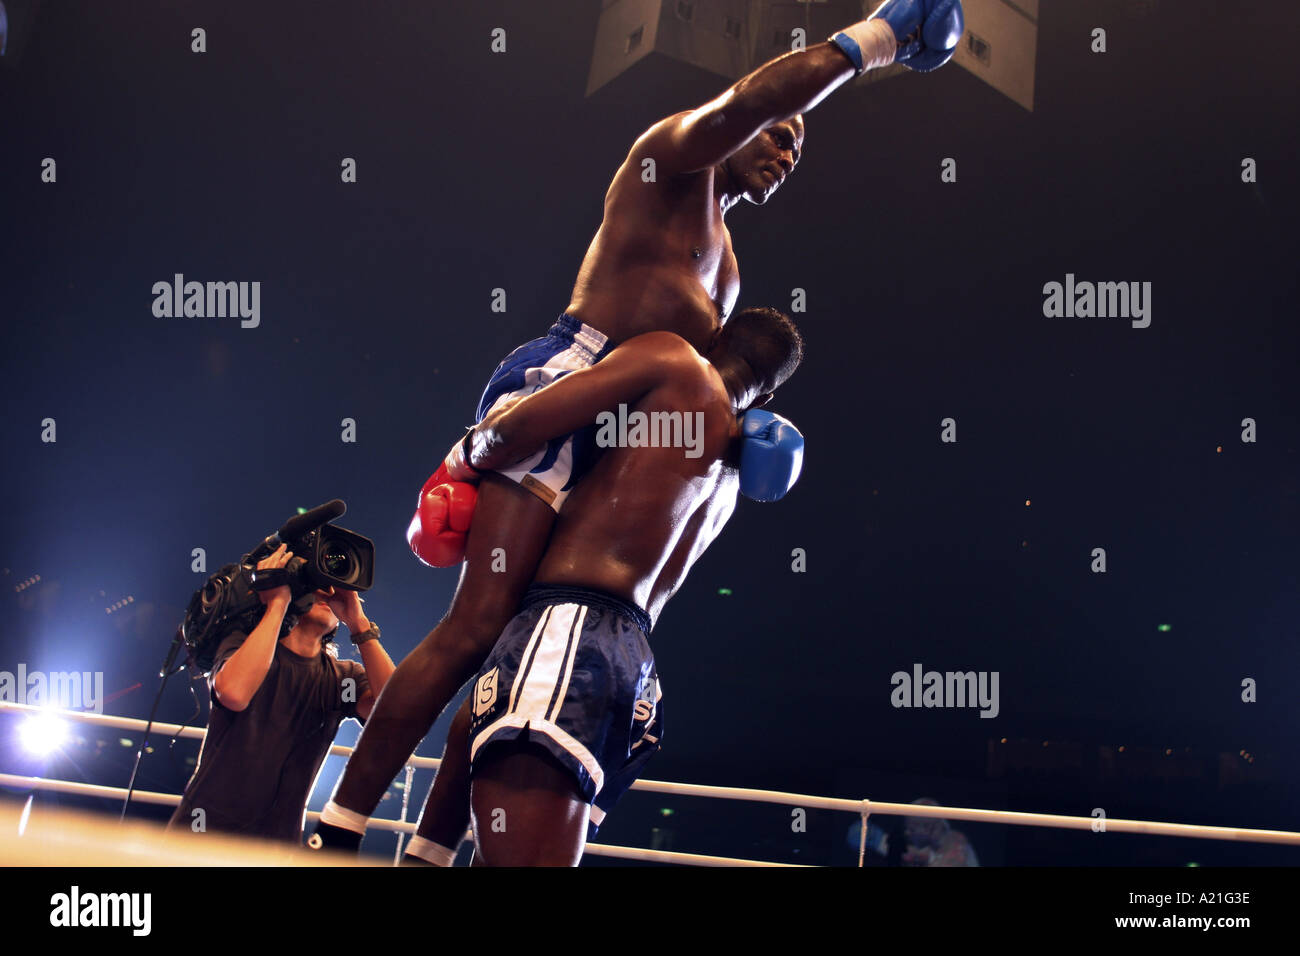 Winners and losers in a K-1 kick boxing fight, Tokyo Dome, Tokyo, Japan. - Stock Image